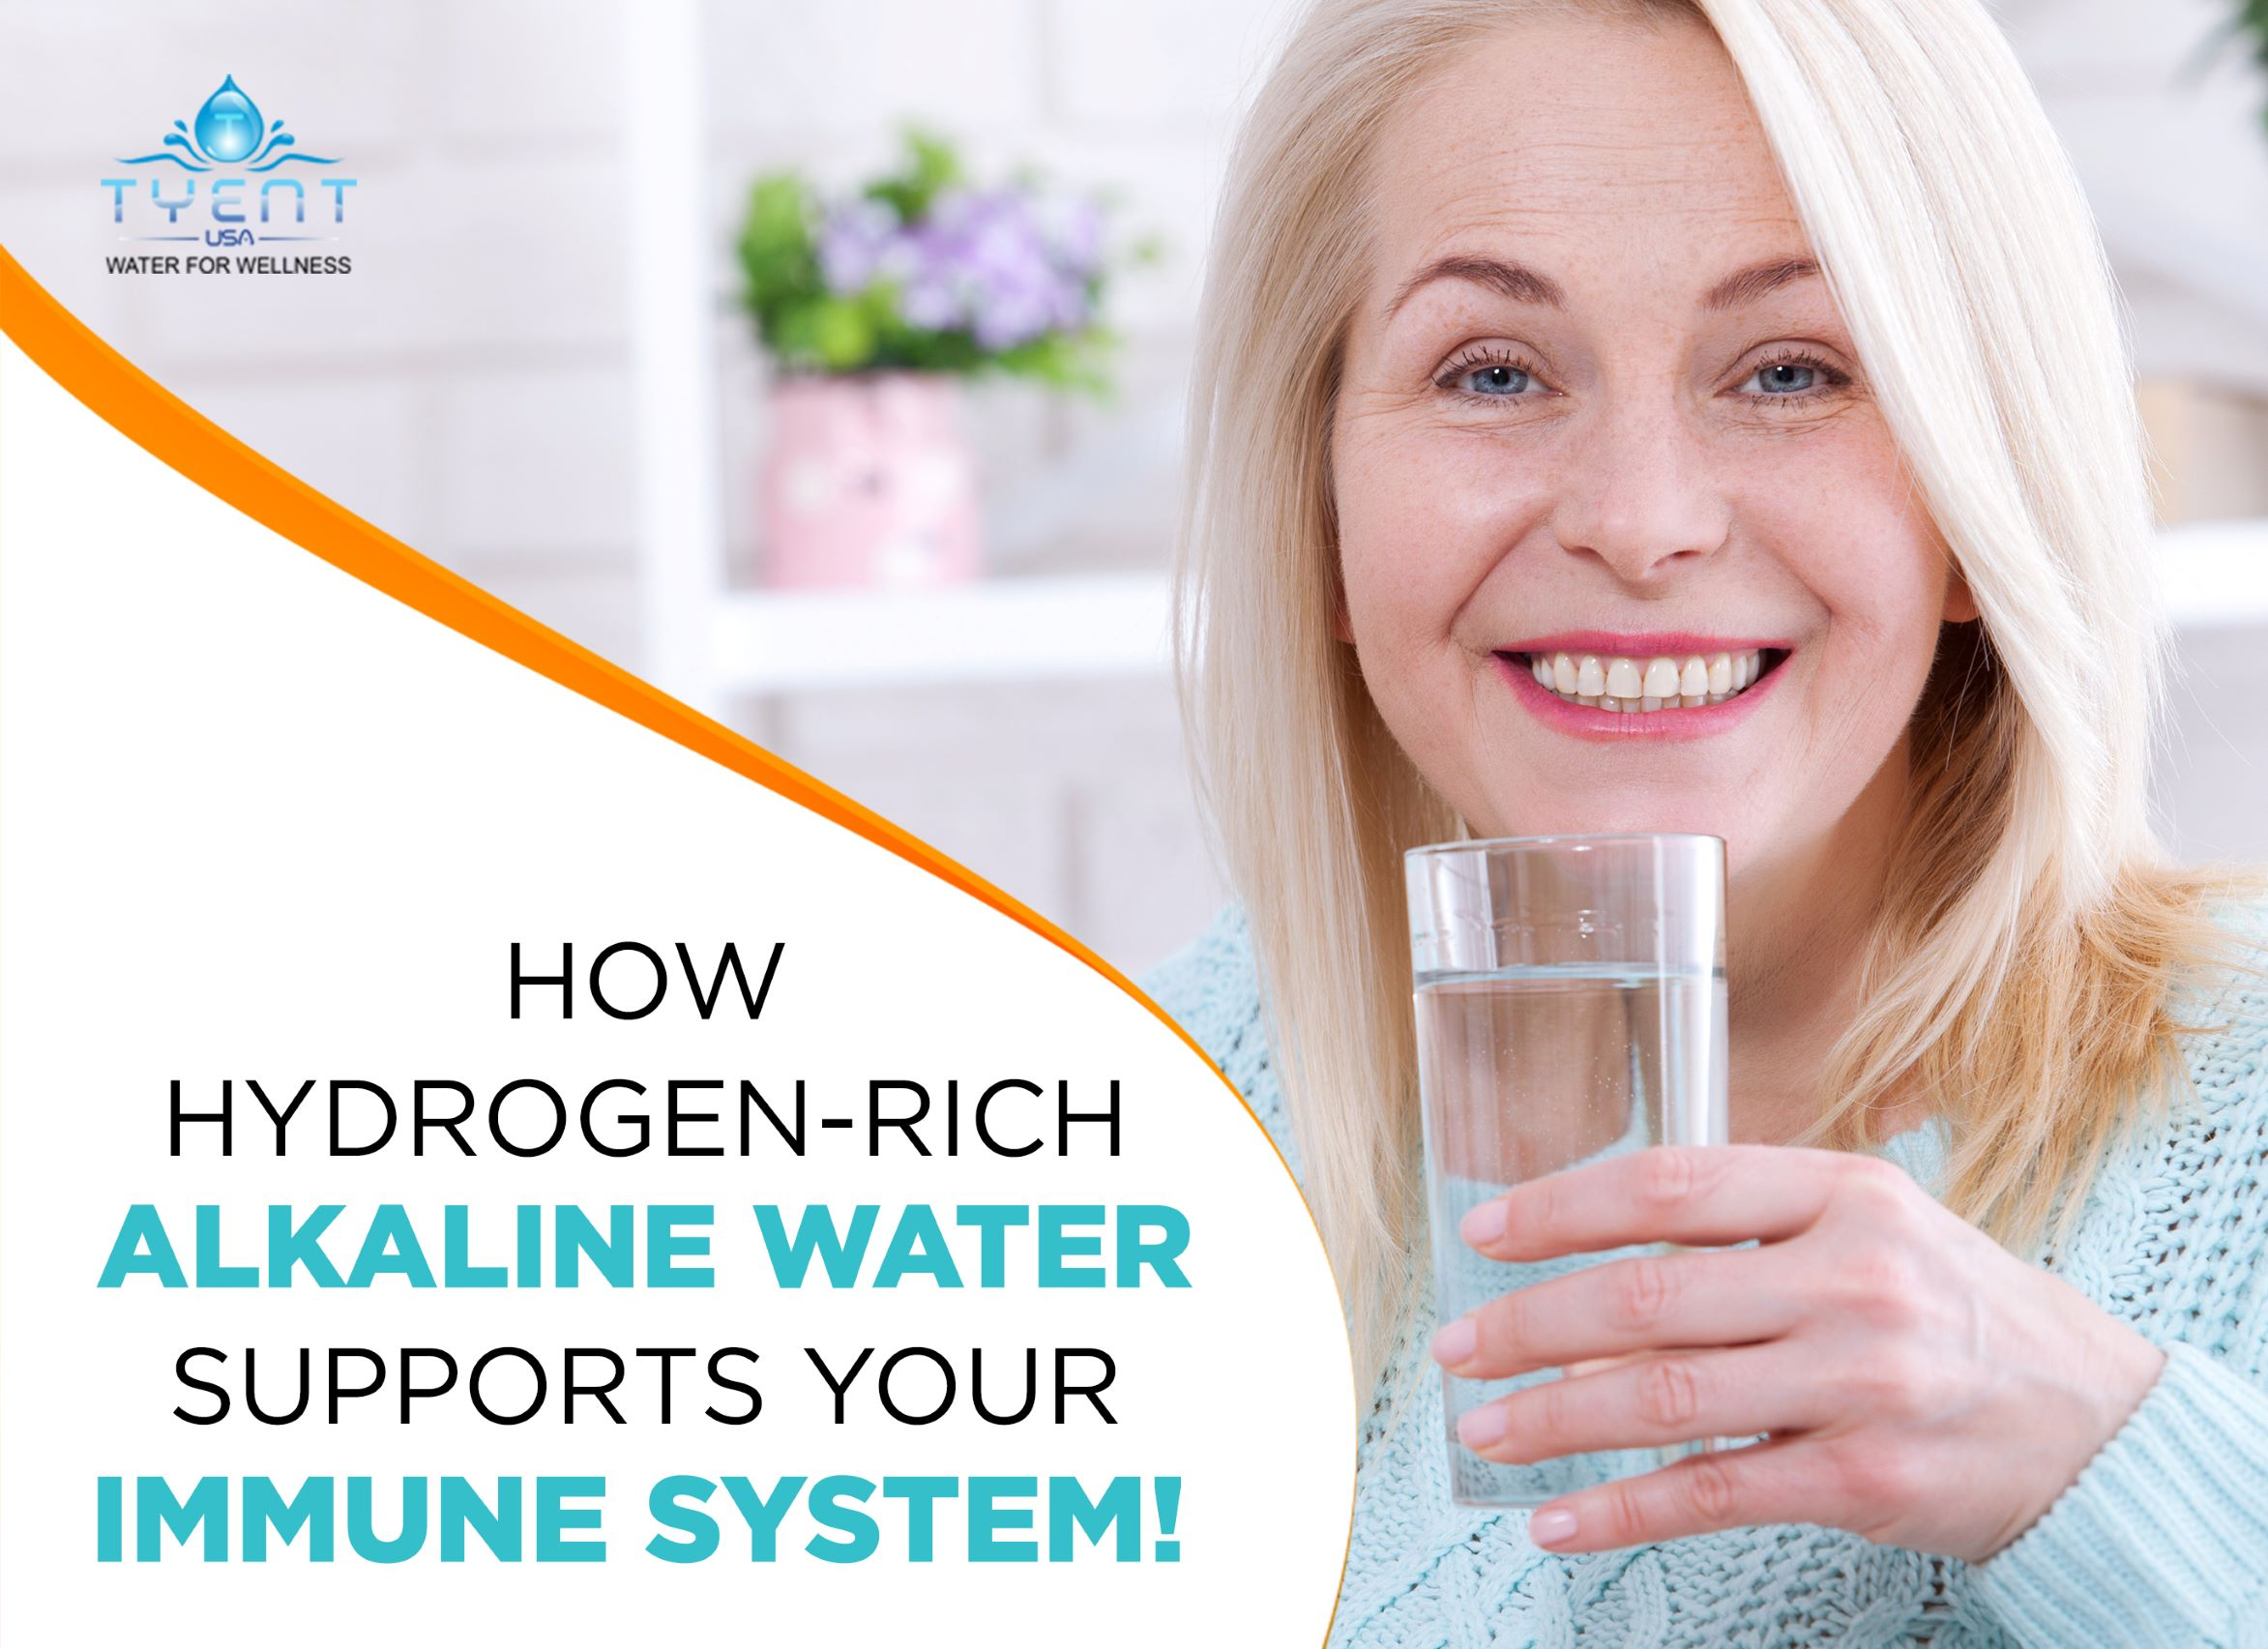 How Hydrogen-Rich Alkaline Water Supports Your Immune System